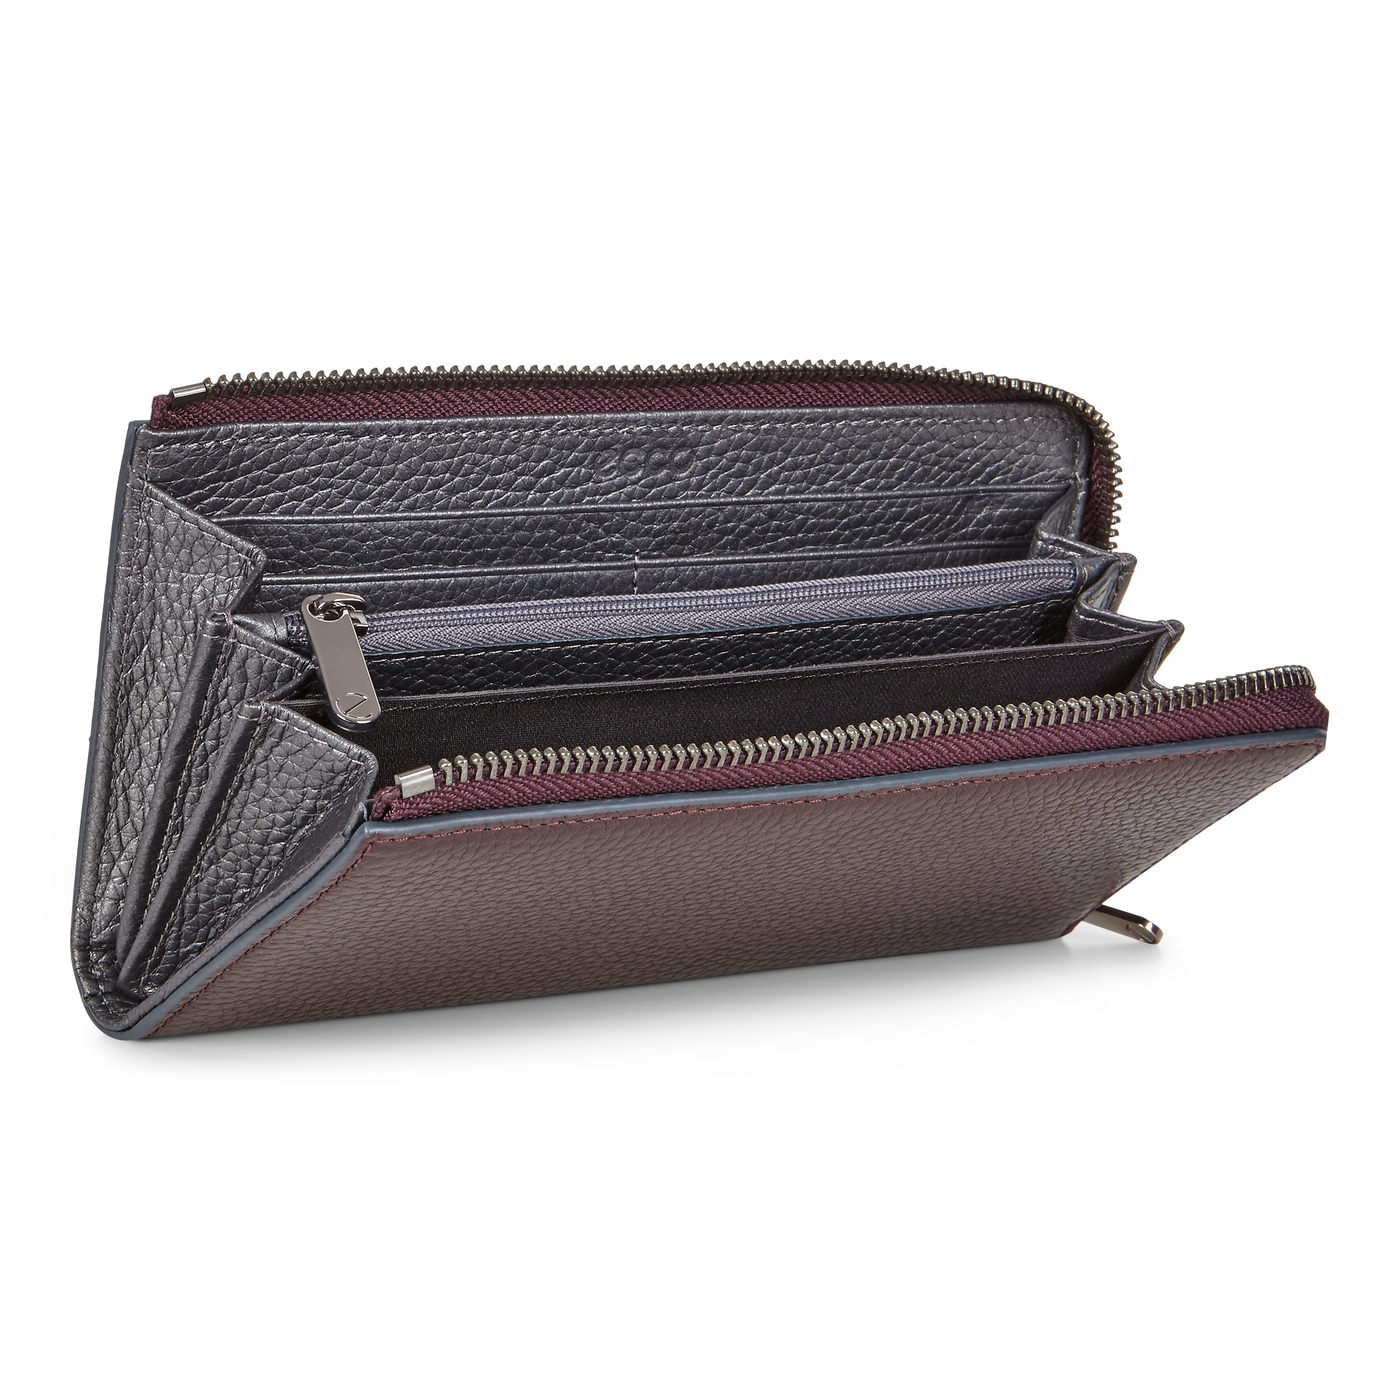 ECCO SP3 Metallic Zip Around Wallet